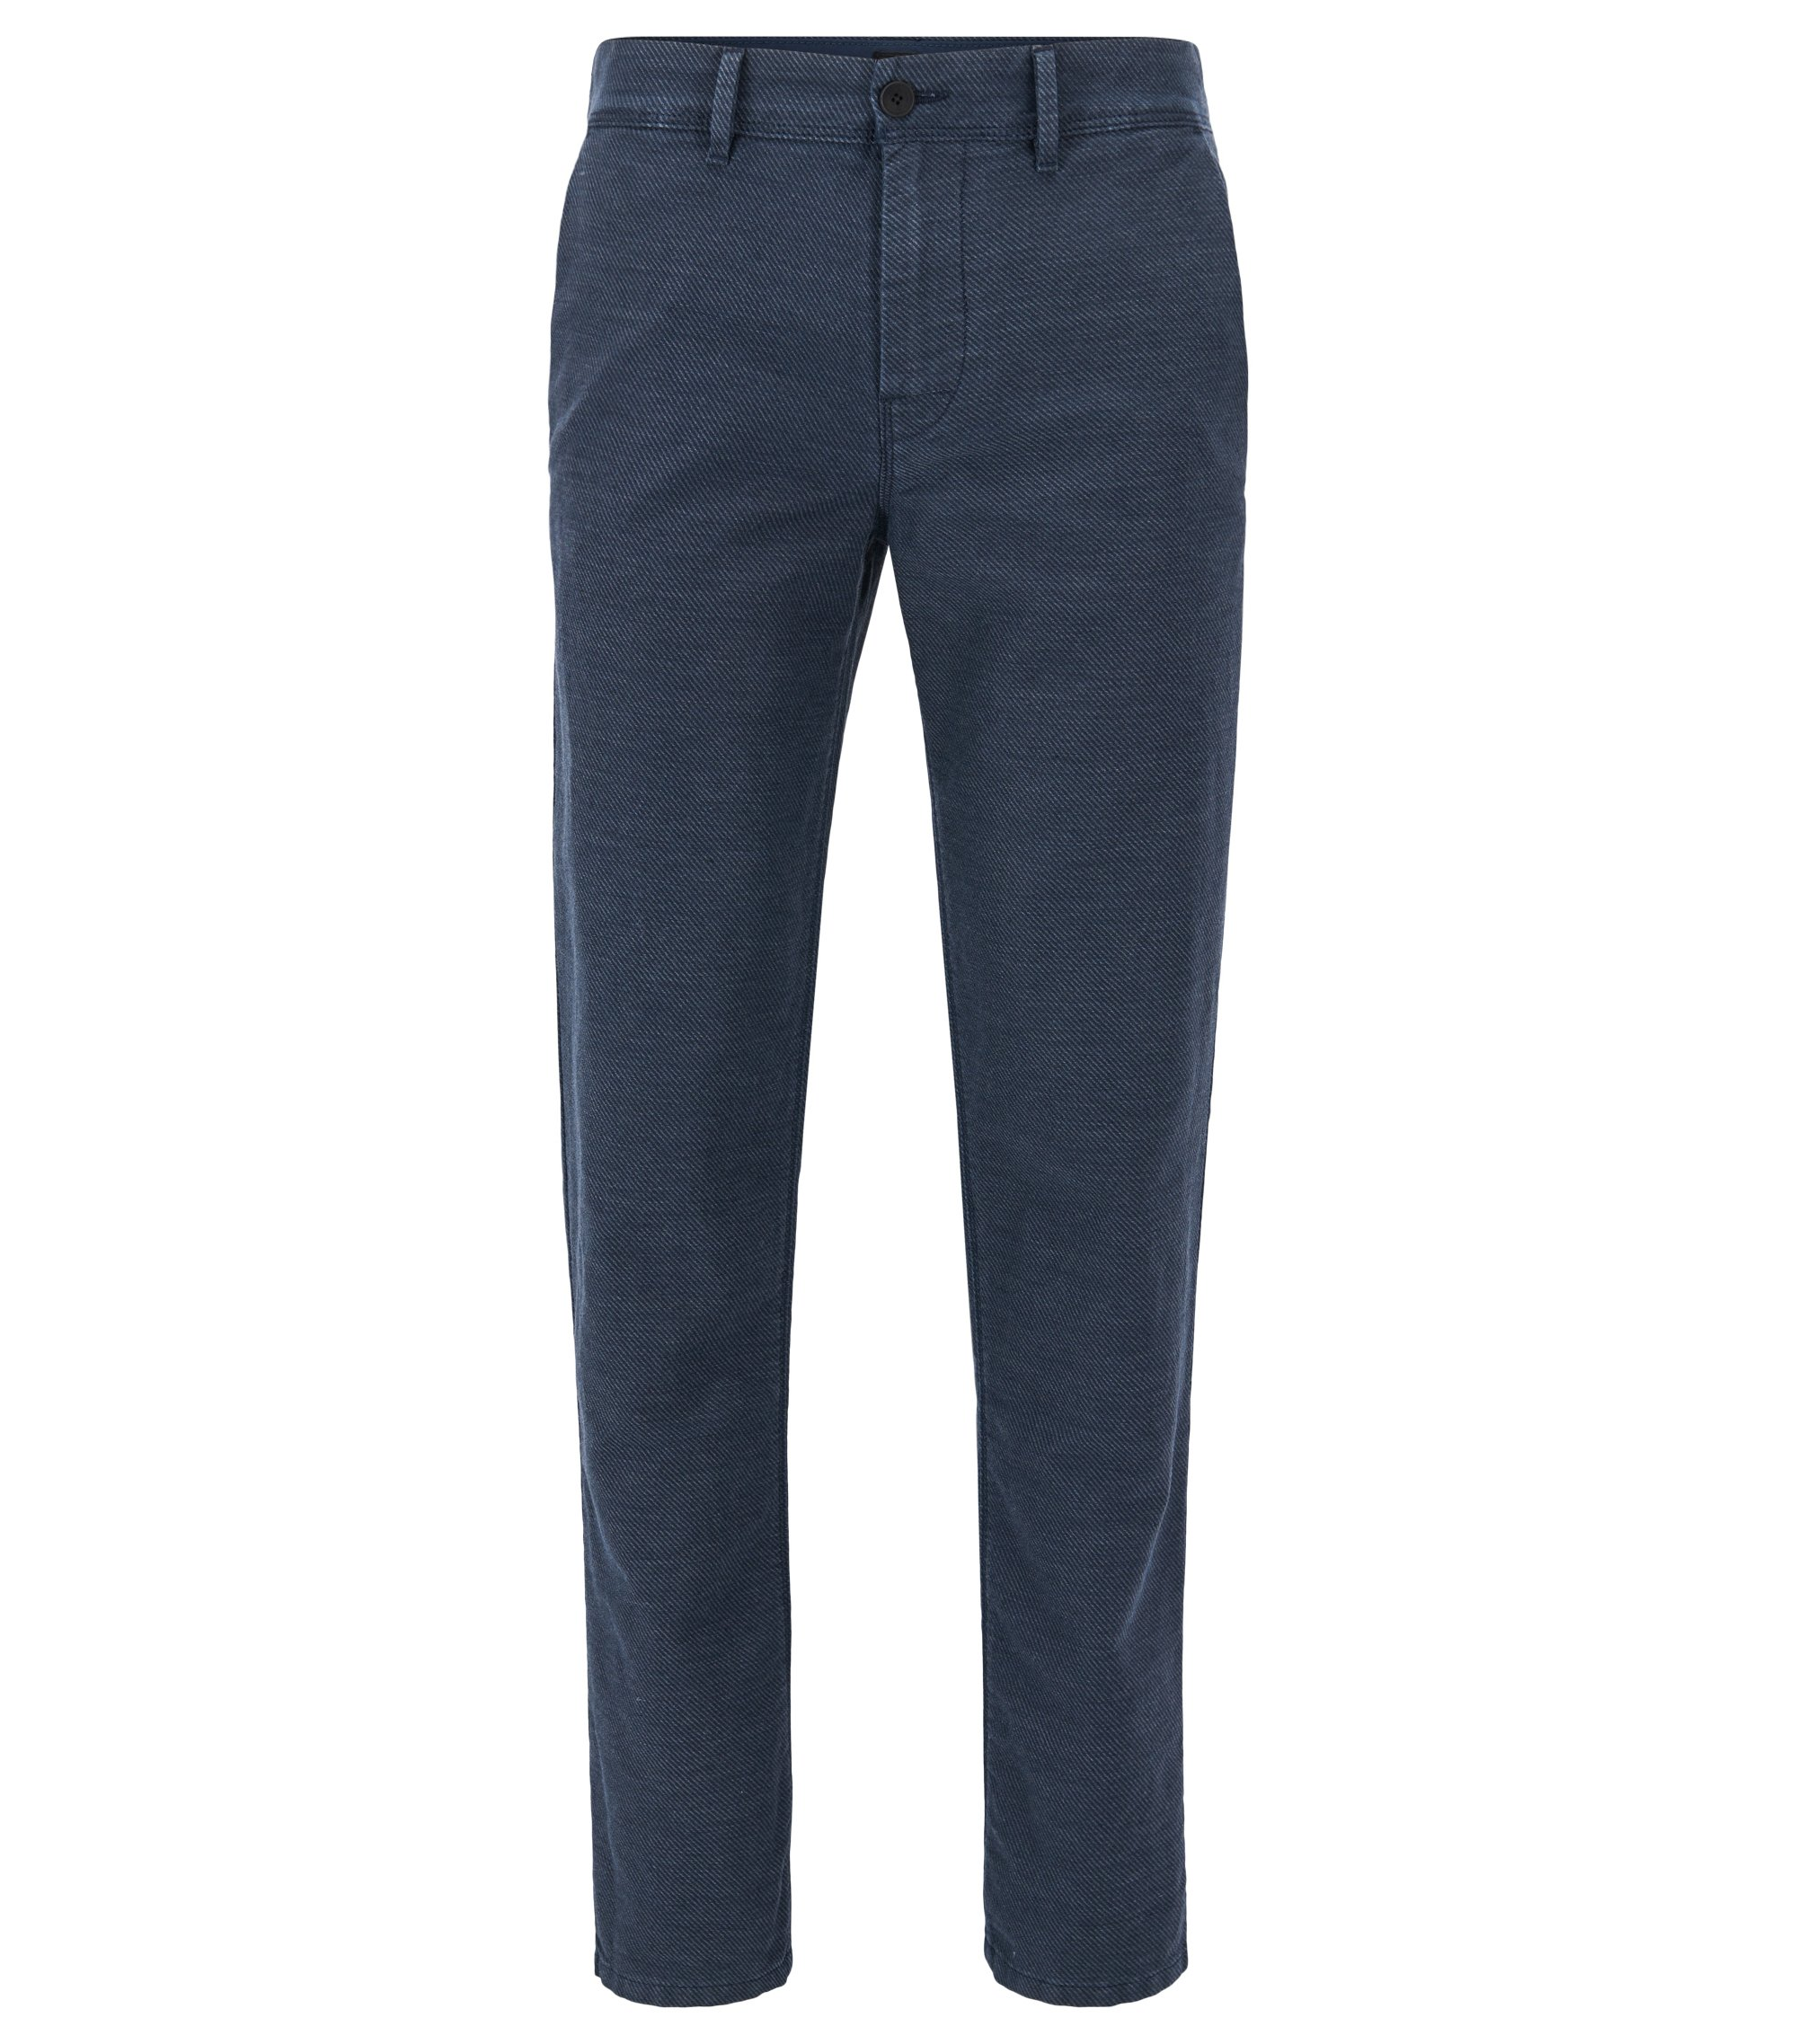 Cotton Linen Blend Pant, Tapered Fit | Stapered W, Dark Blue